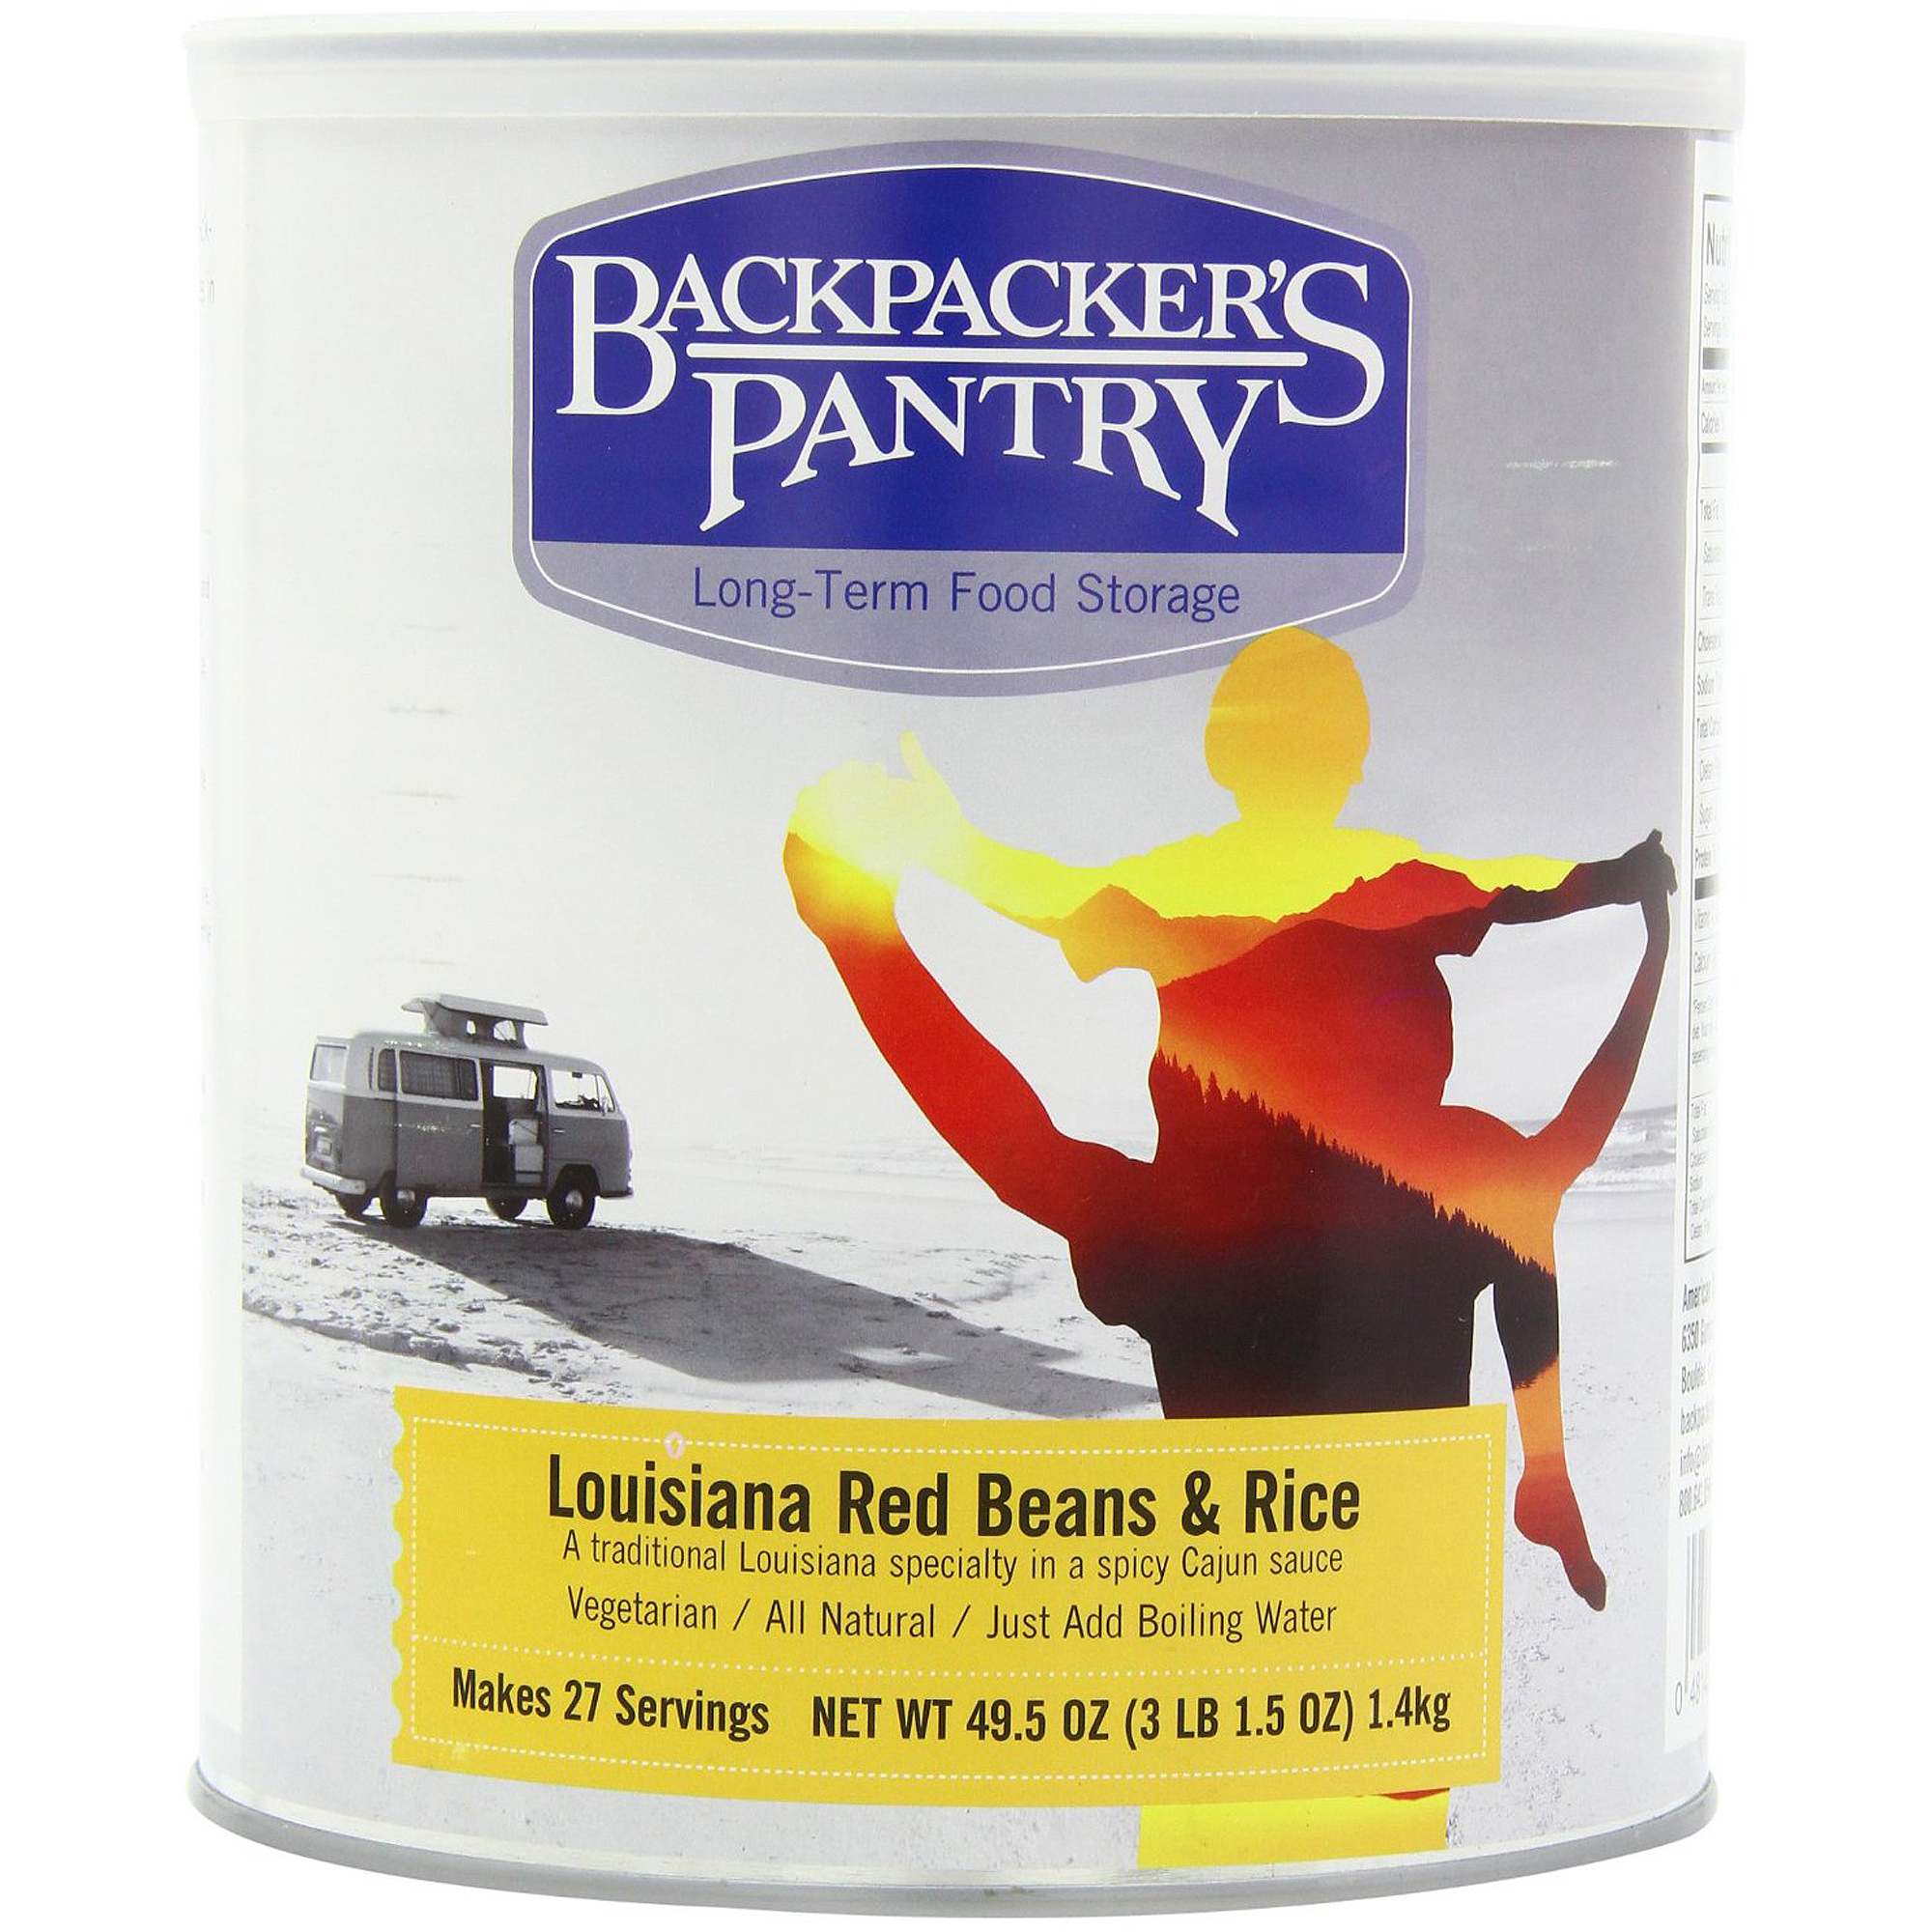 Backpacker's Pantry Louisiana Red Beans & Rice Can by Backpackers Pantry